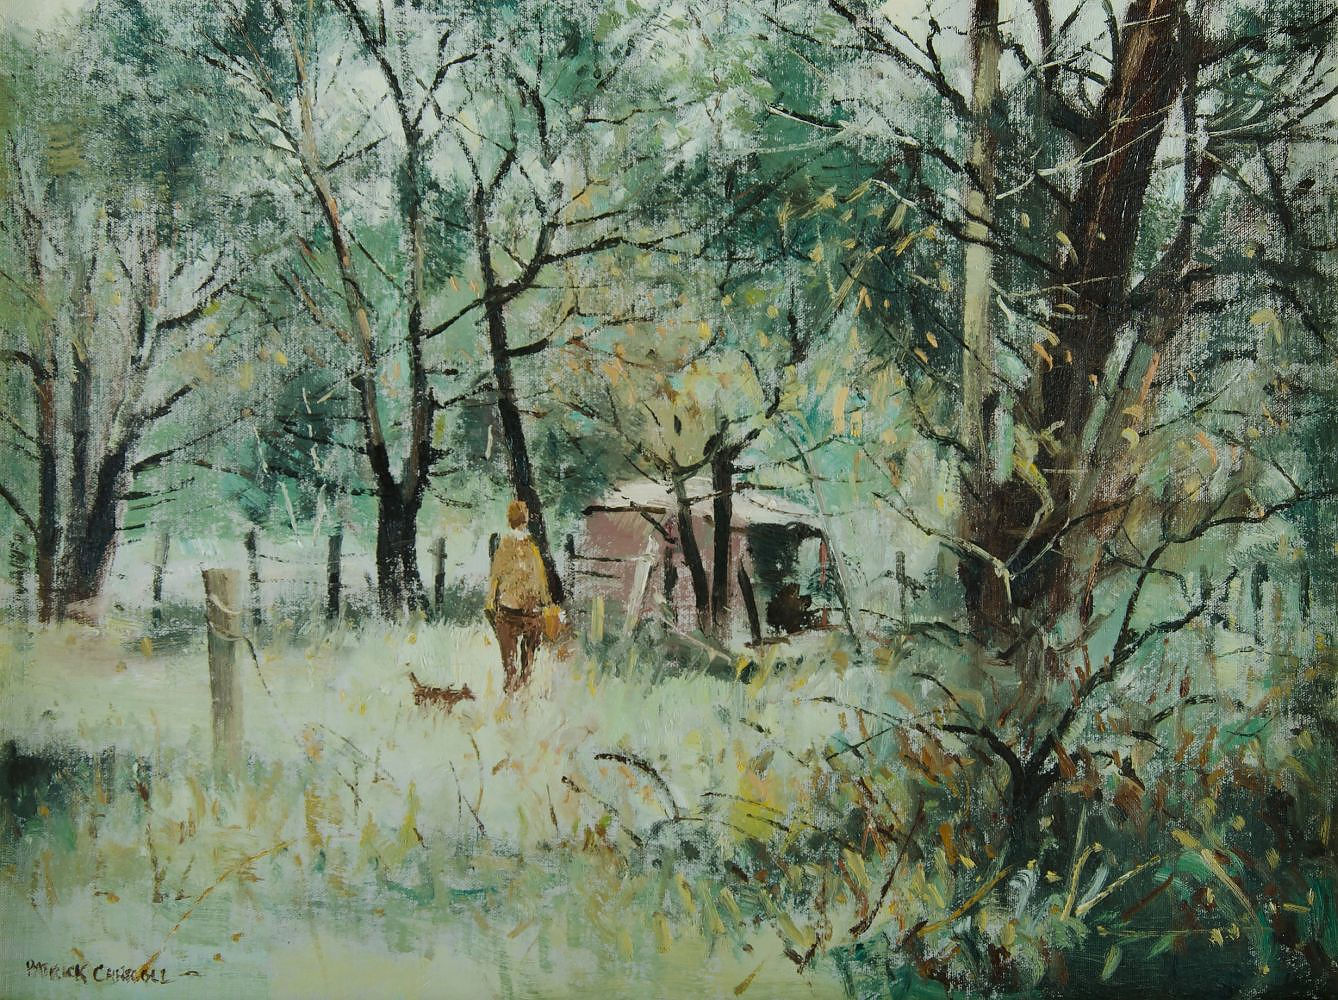 'CARROLL, Patrick (b.1949) On a Bright Bush Morn, Berrima Oil on Canvas on Board'